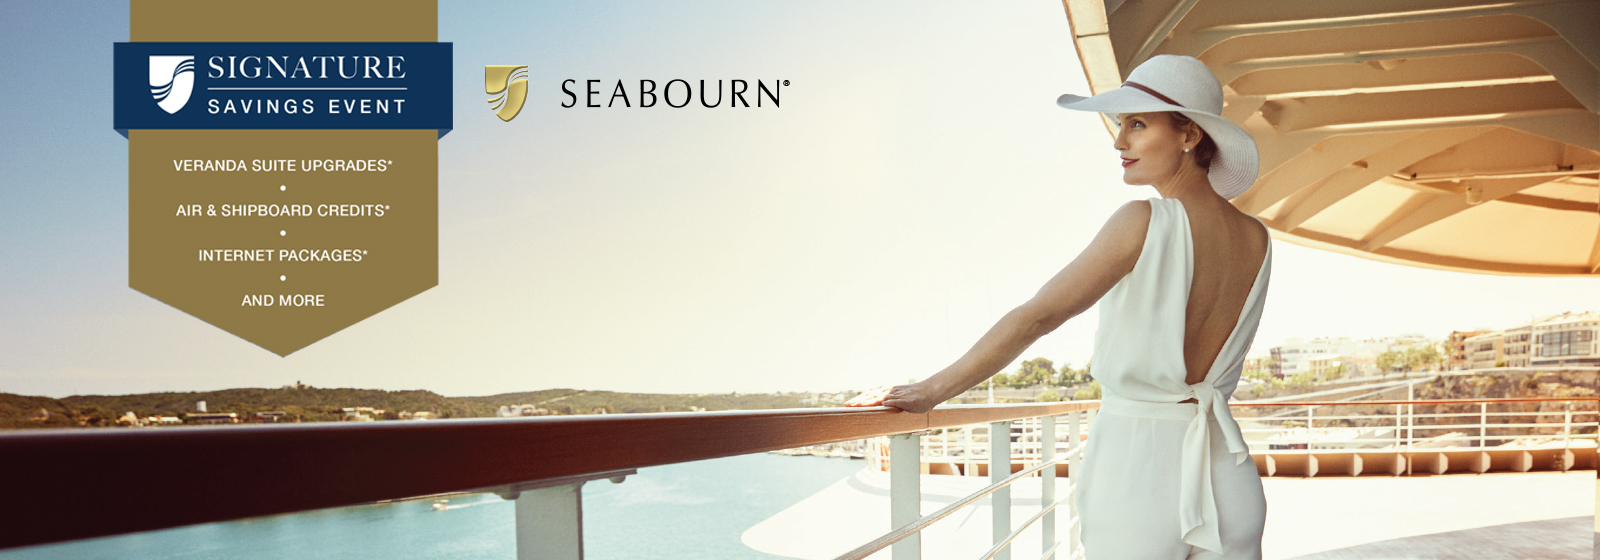 Seabourn - Signature Savings1